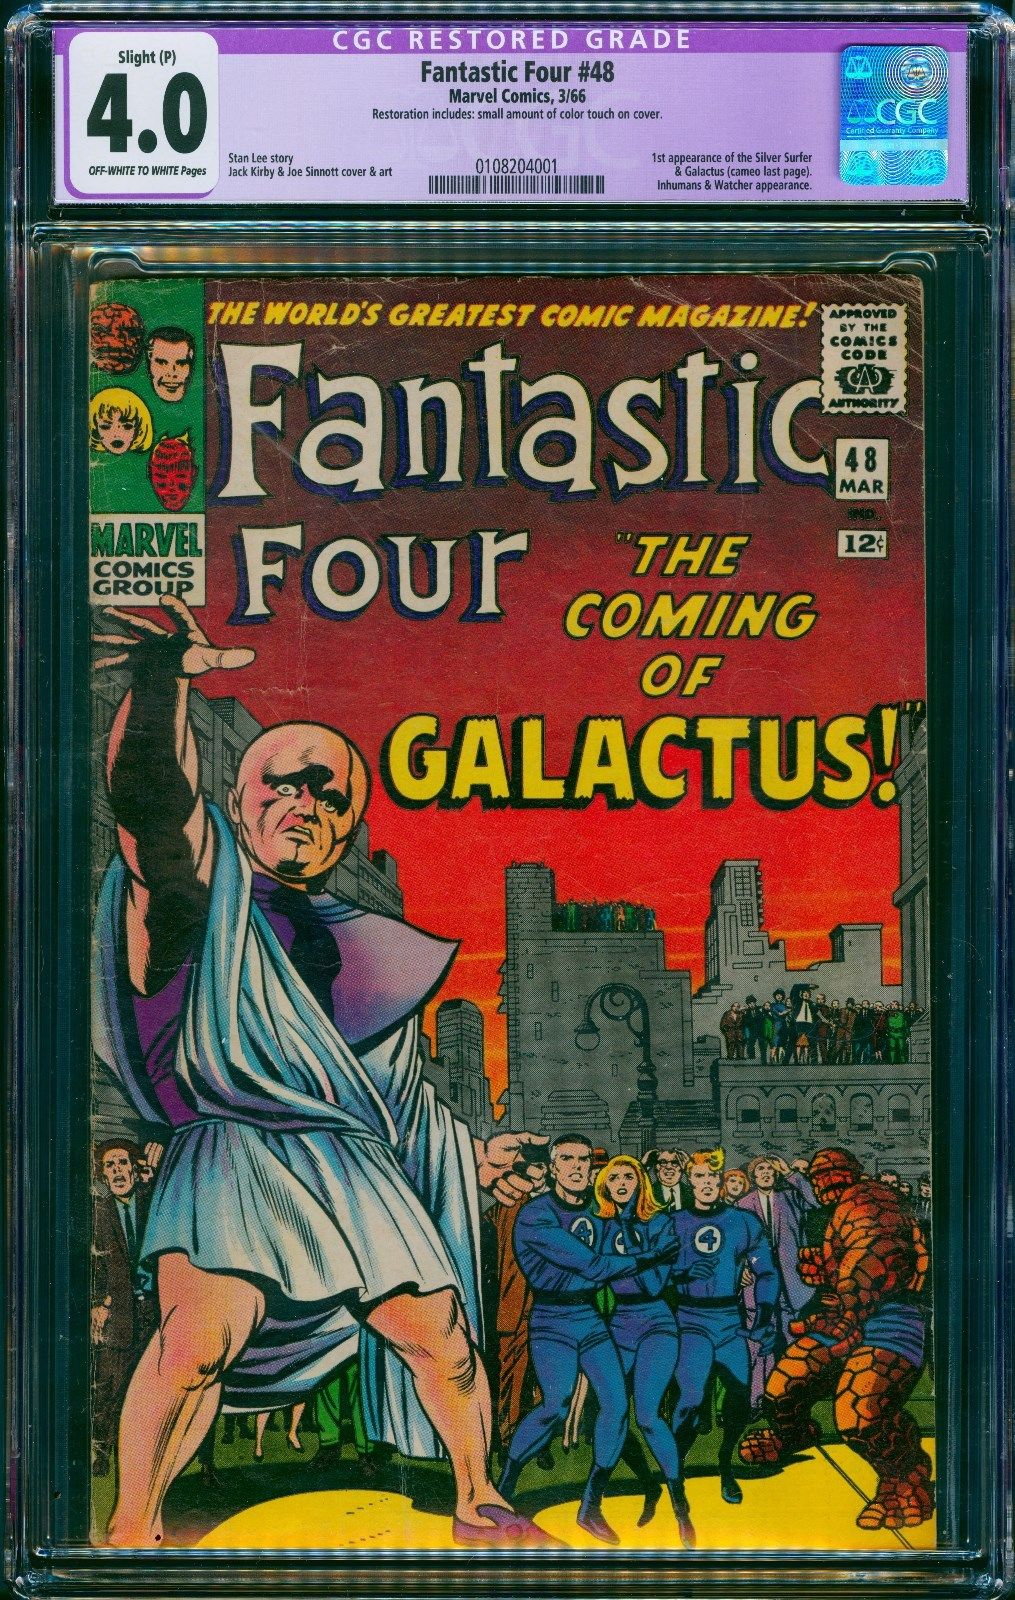 Fantastic Four #48  CGC 4.0 VG First App. Silver Surfer and Galactus Marvel 3/66